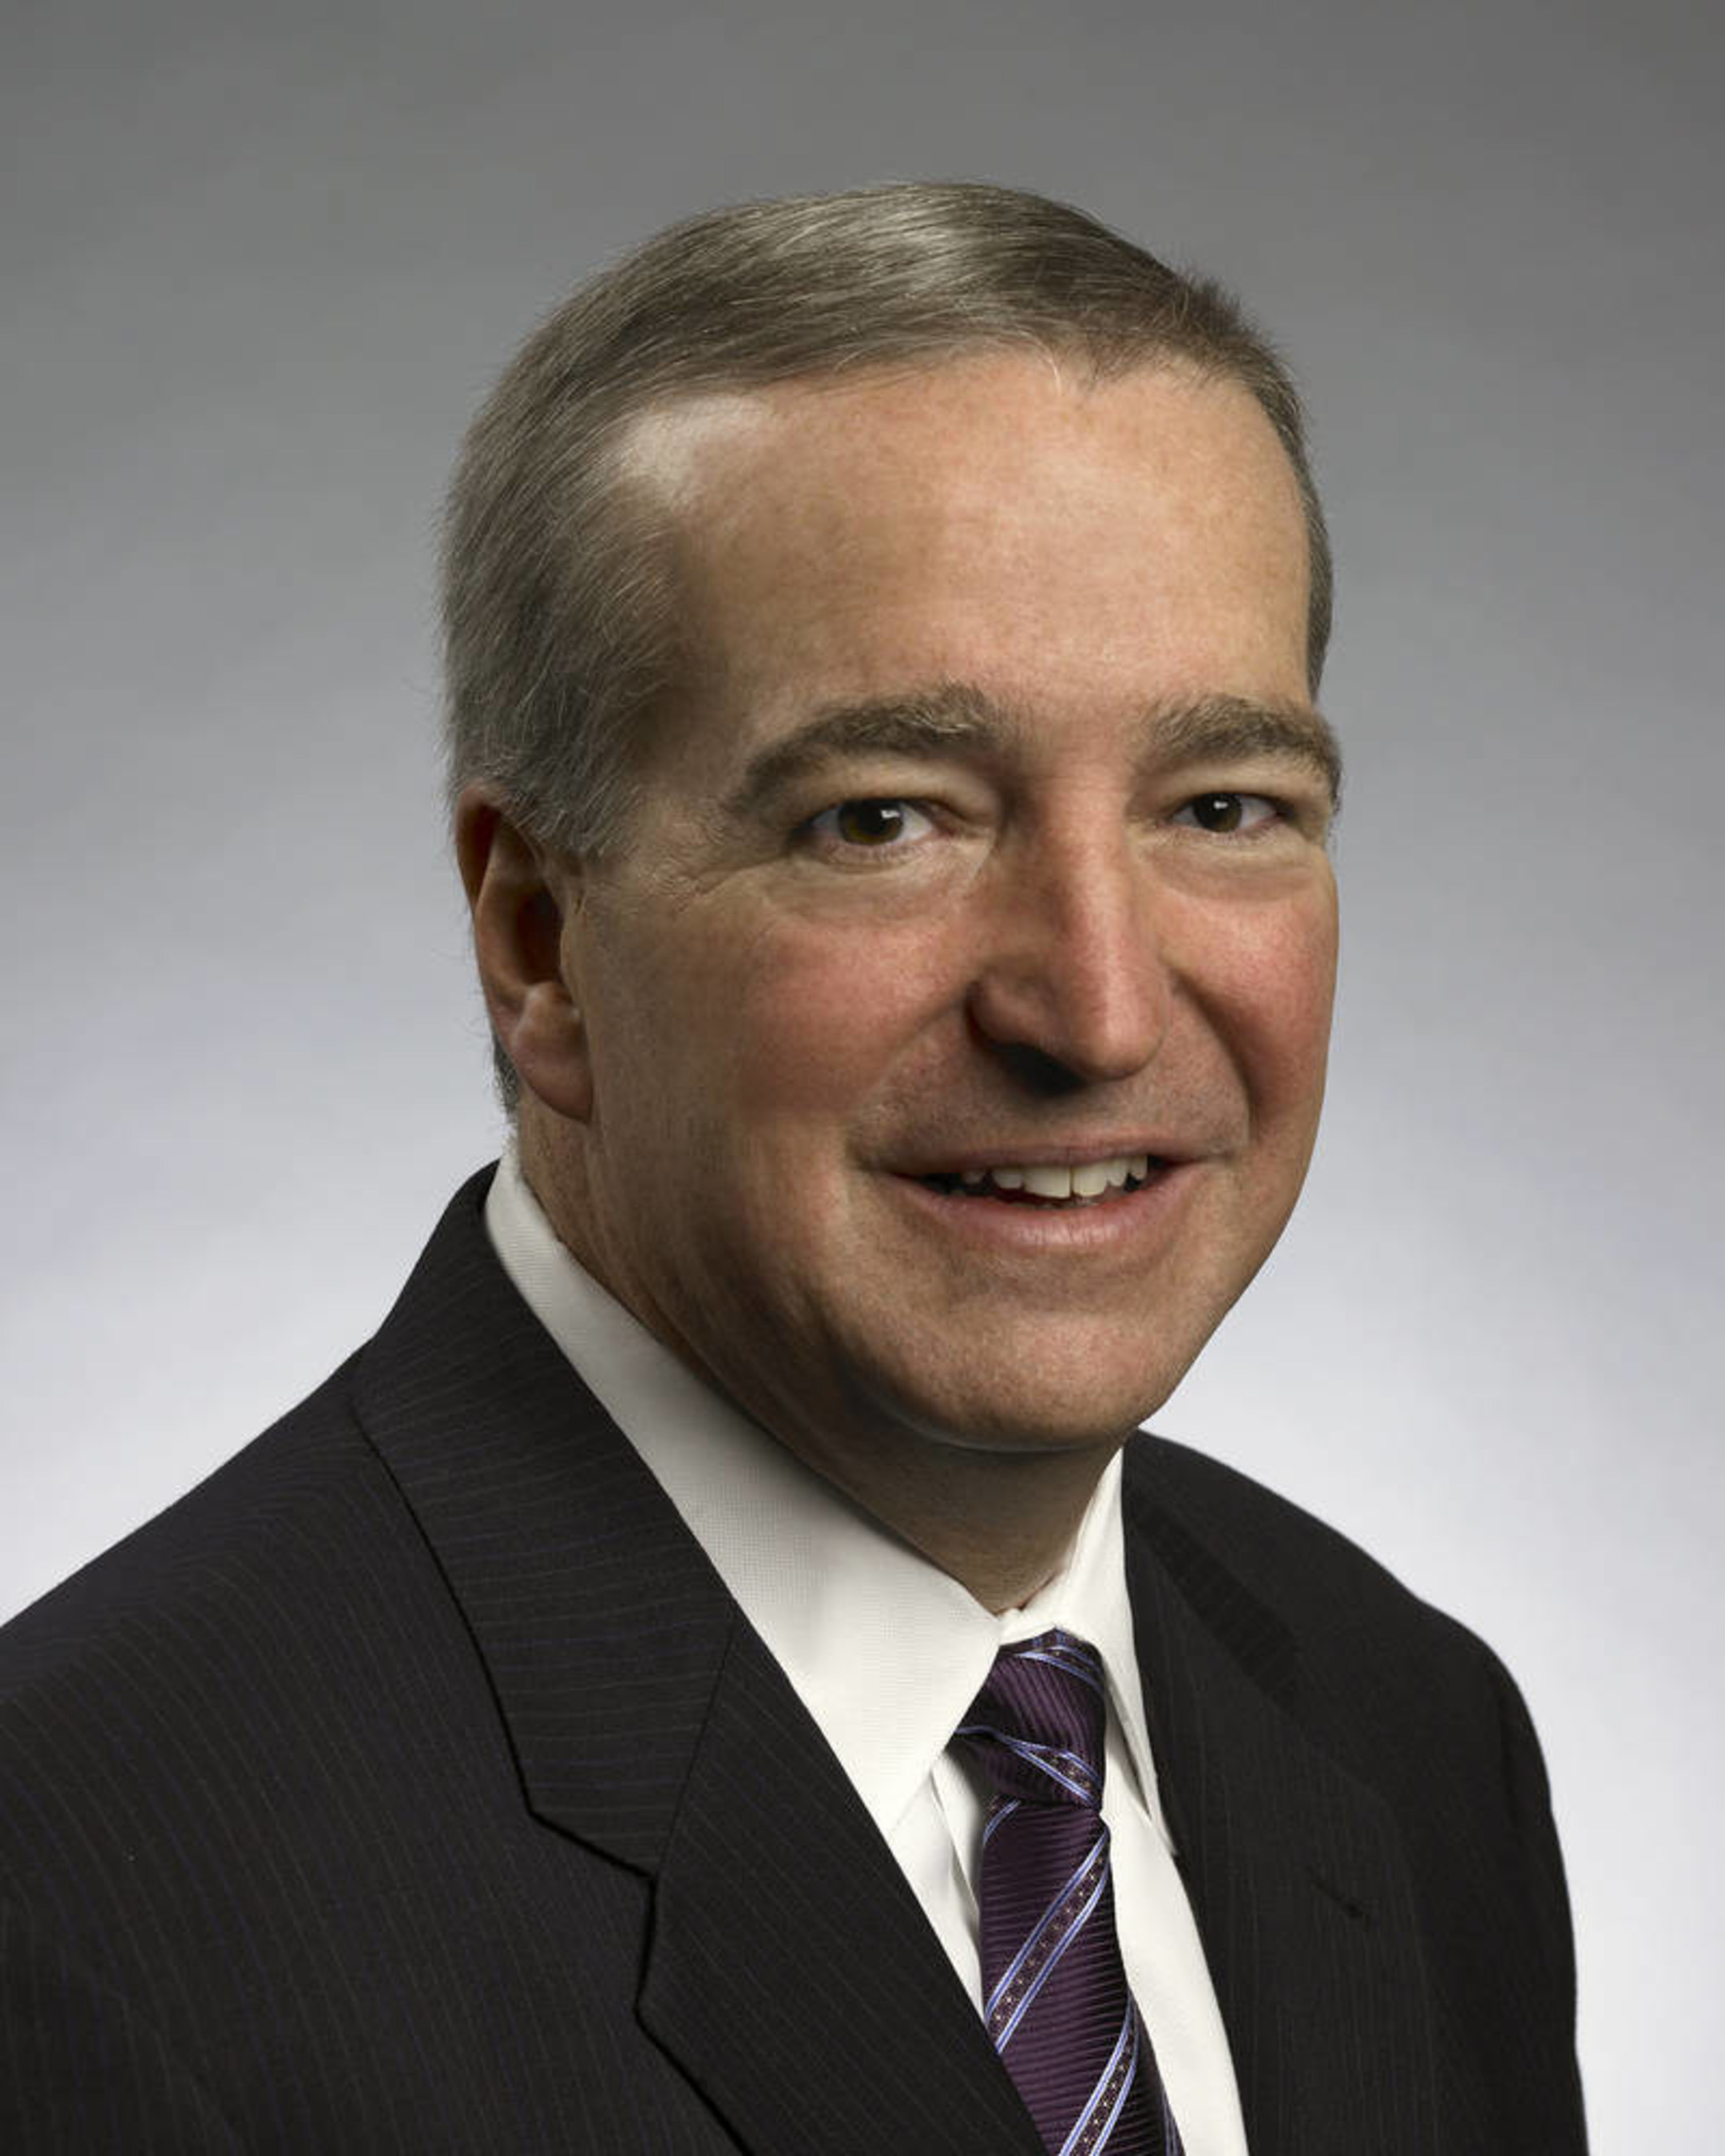 NetSuite Appoints Mike Arntz as Senior Vice President of Sales Americas